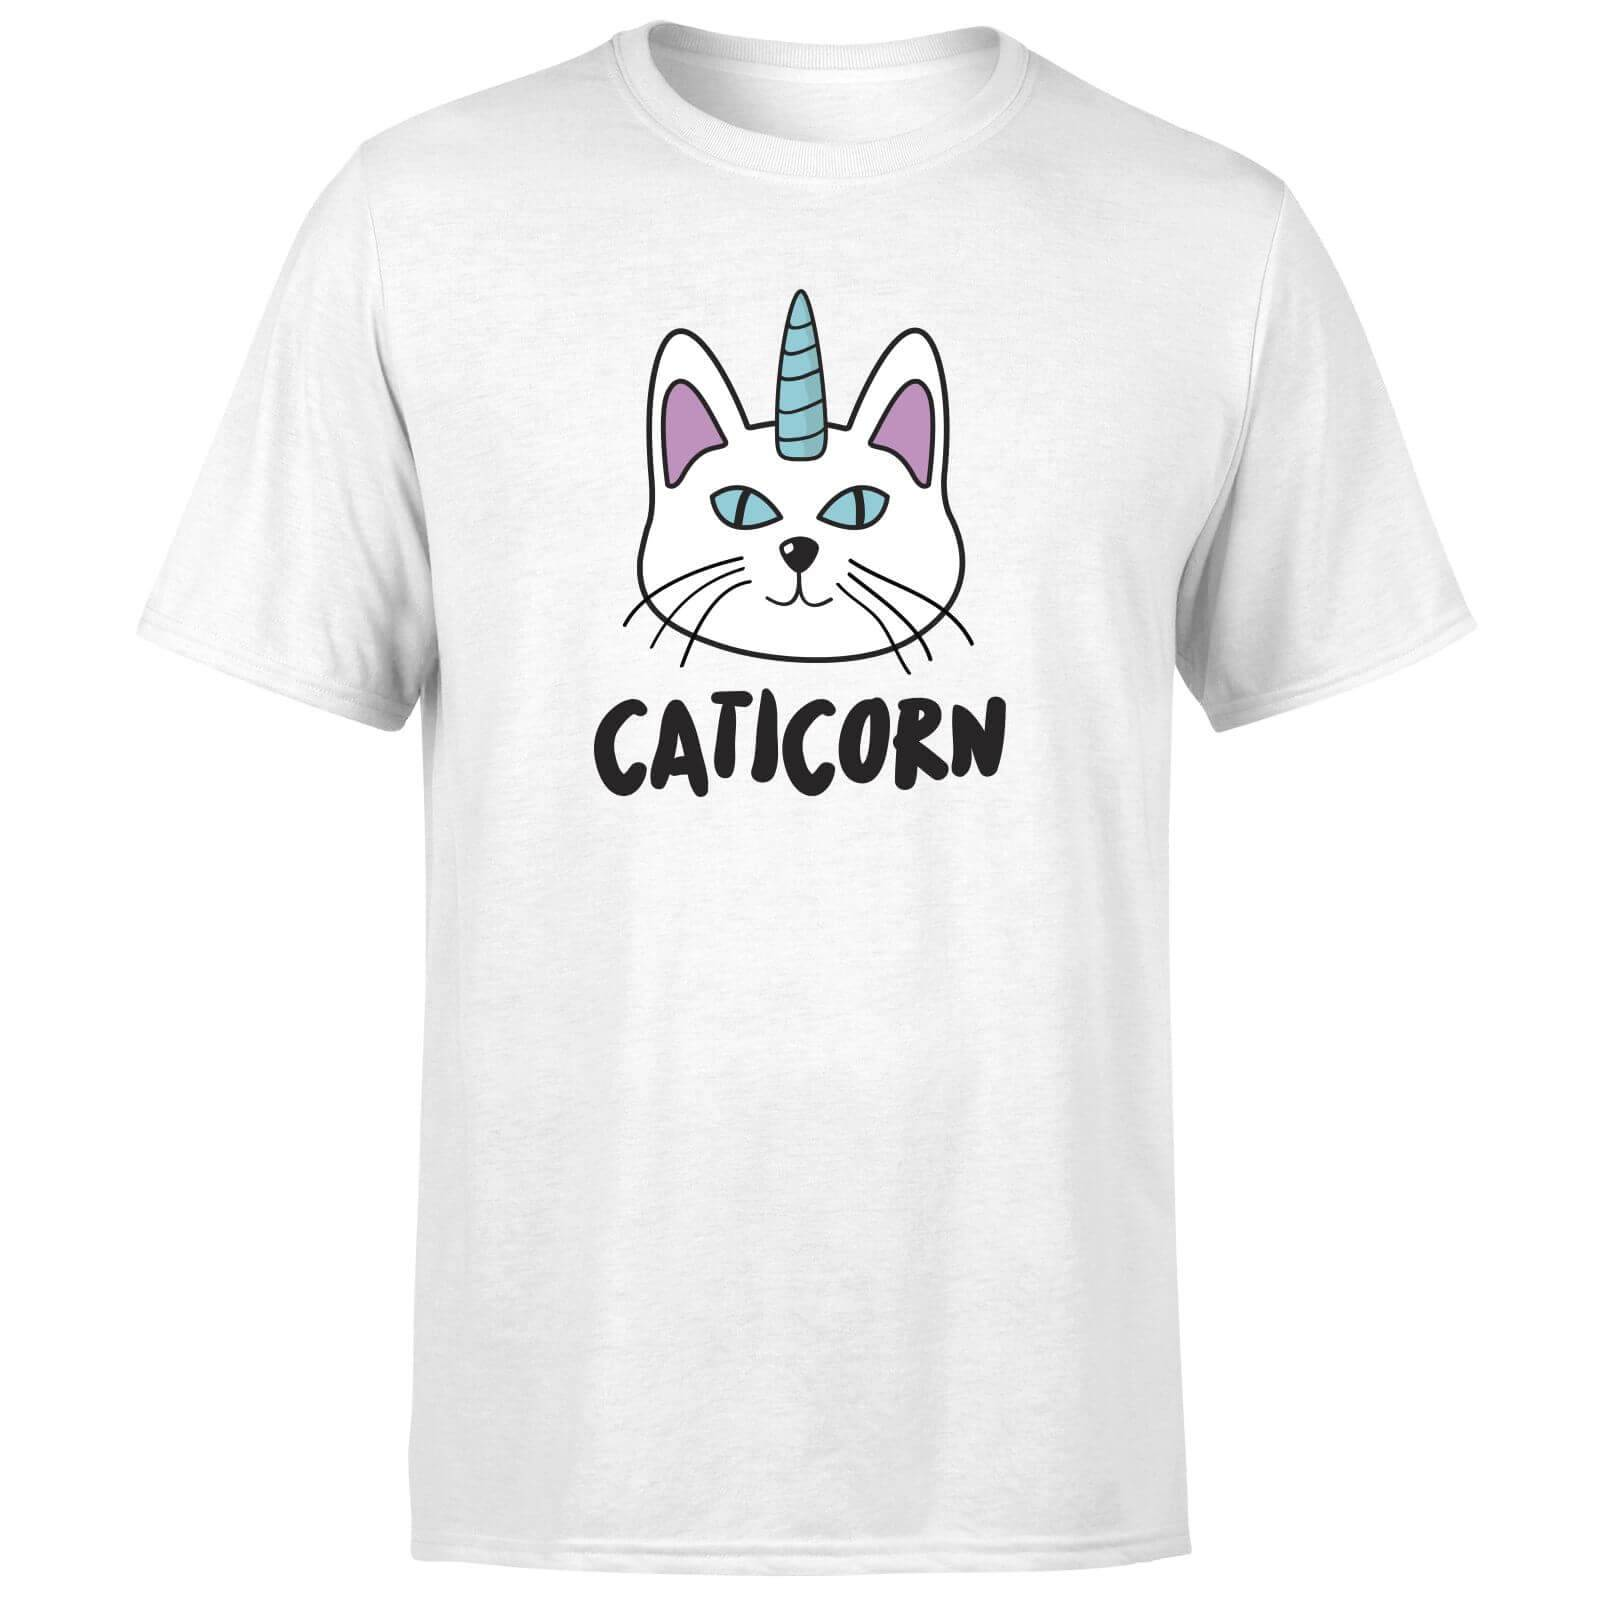 The Pet Collection Caticorn T-Shirt - White - 4XL - White